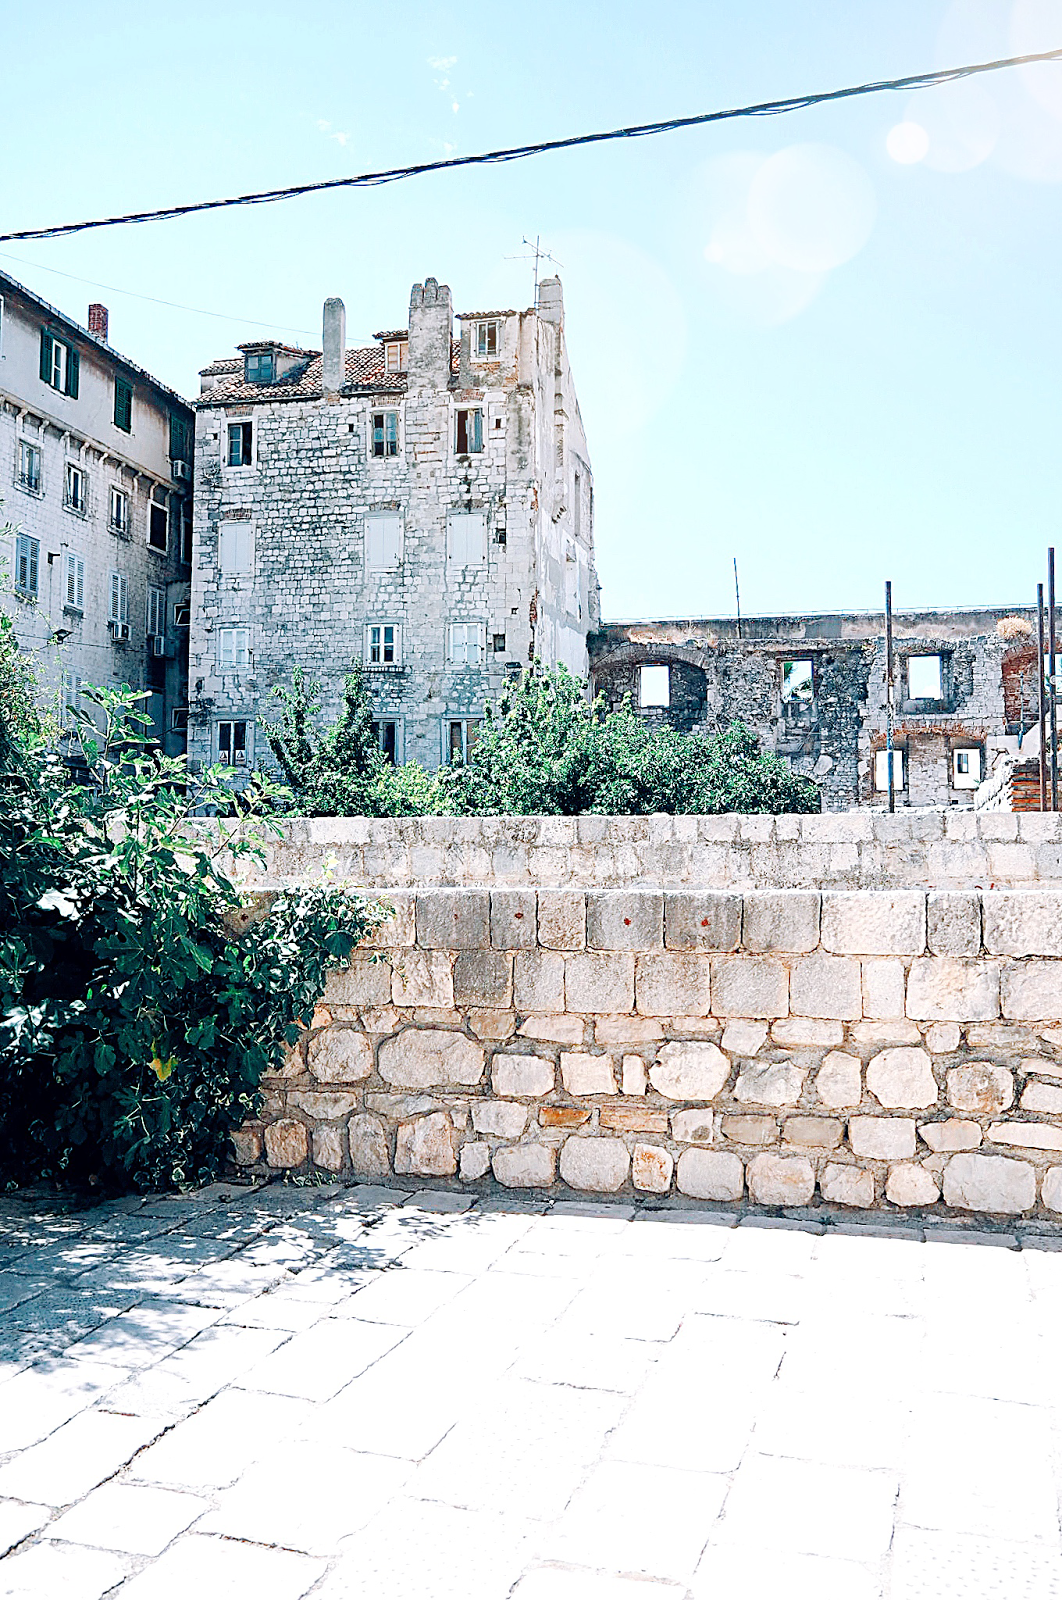 TRAVEL DIARY: SPLIT, CROATIA